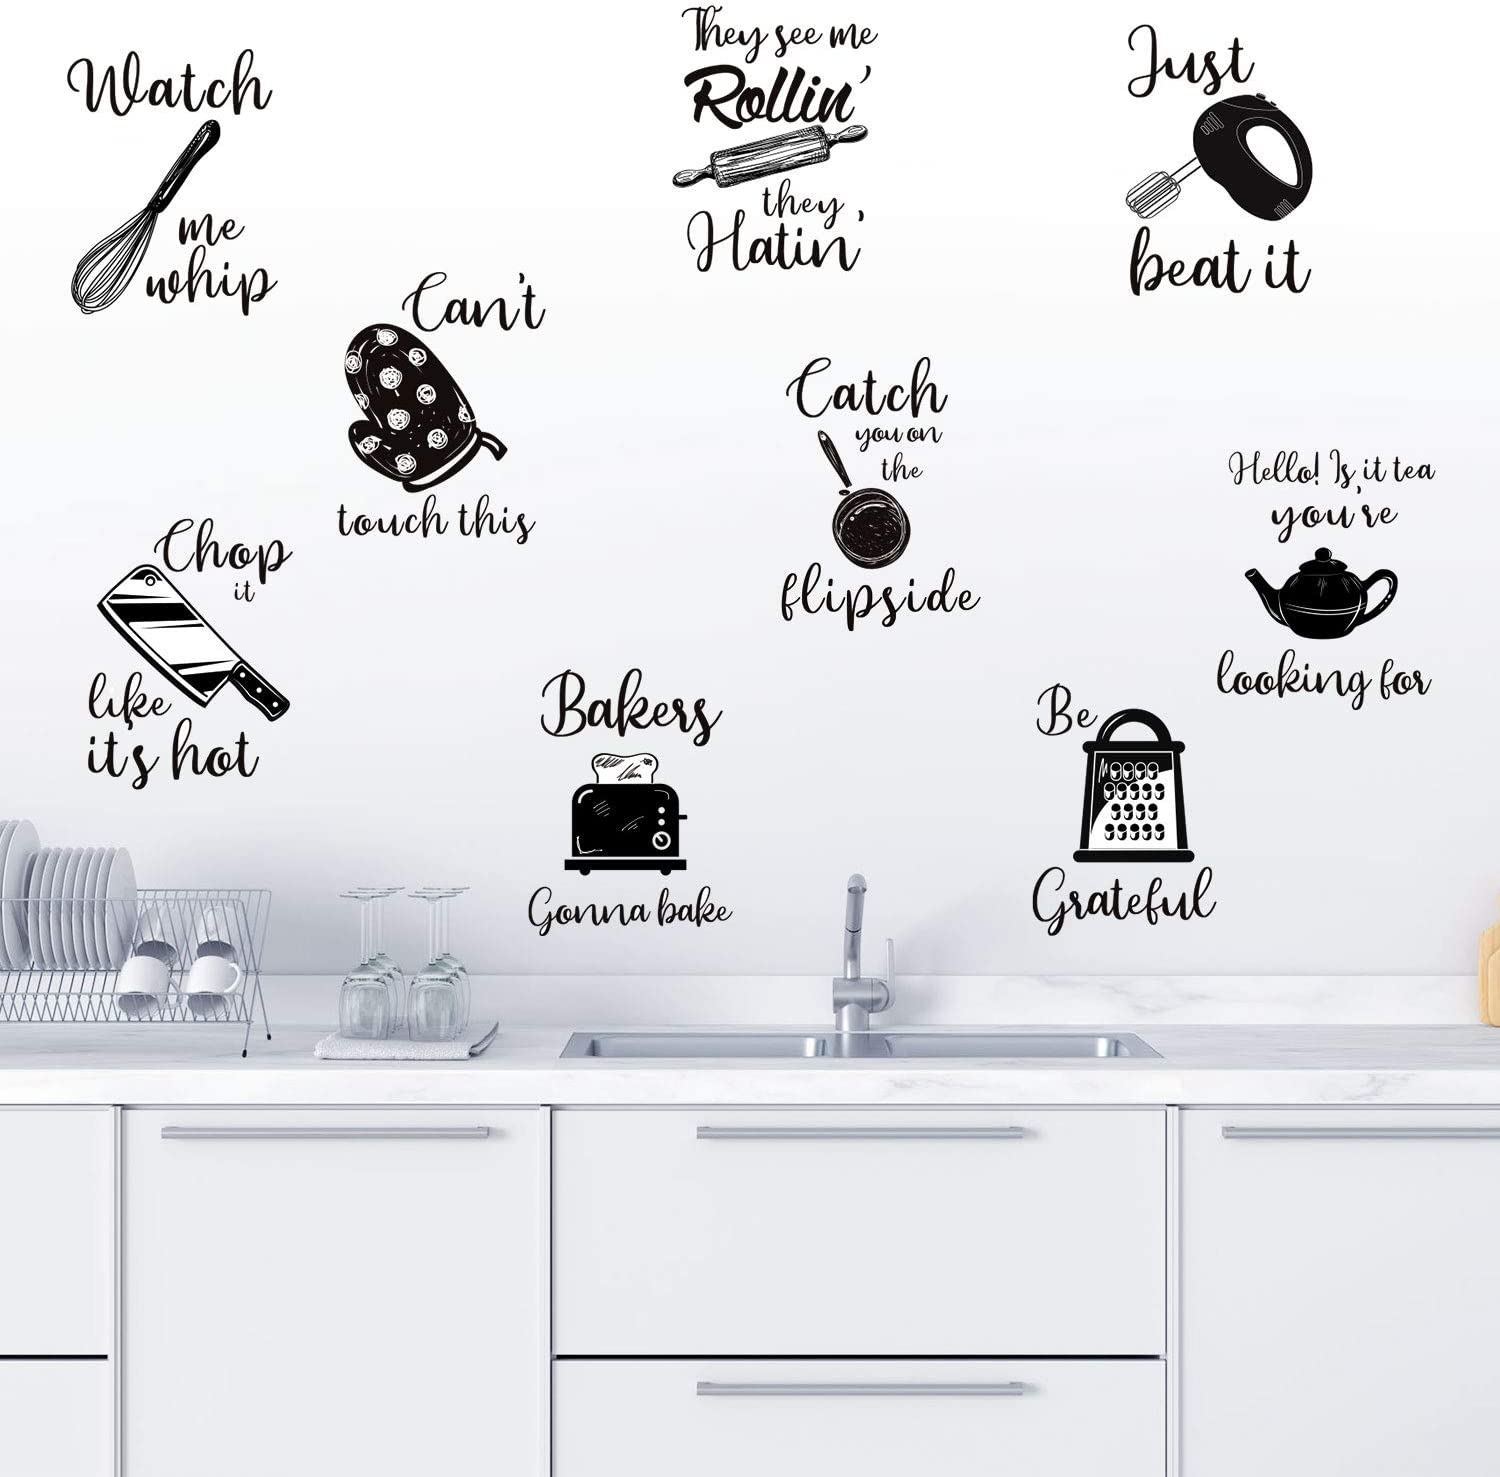 Kitchen Quotes Wall Stickers Kitchen Lettering Wall Decal Kitchenware with Sayings Wall Decoration for Kitchen Dining Baking Room Restaurant